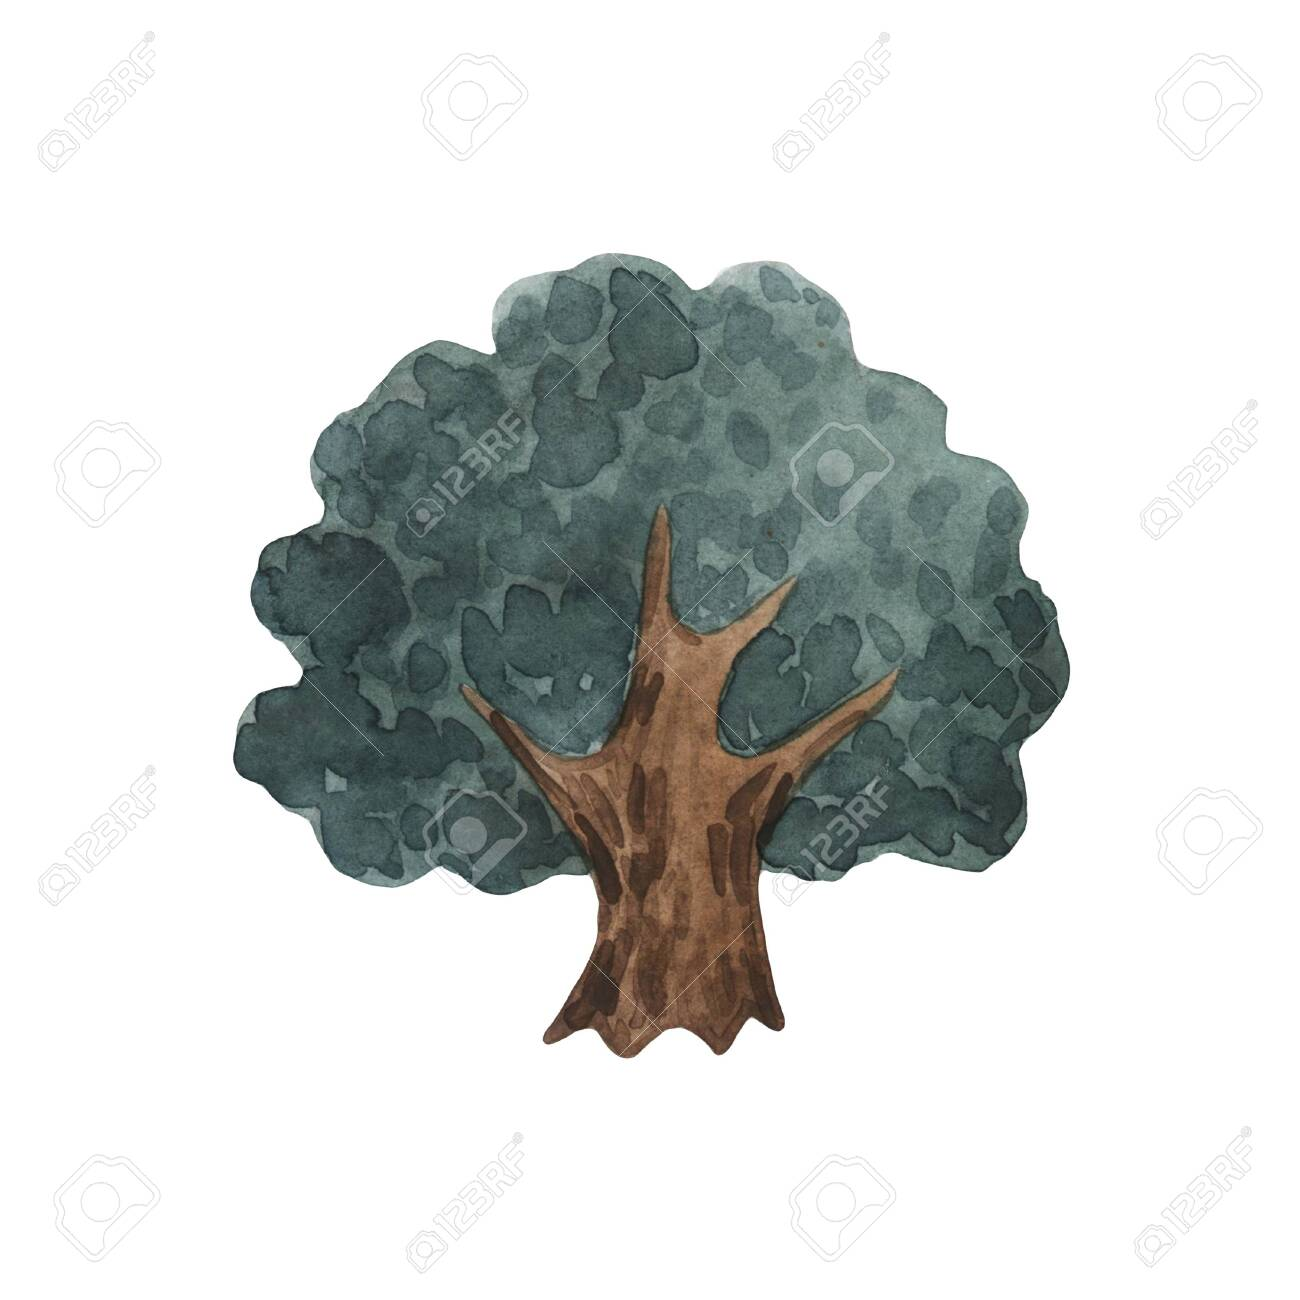 Watercolor Trees Forest Pine Blue Spruce Oak Landscape Stock Photo Picture And Royalty Free Image Image 150101314